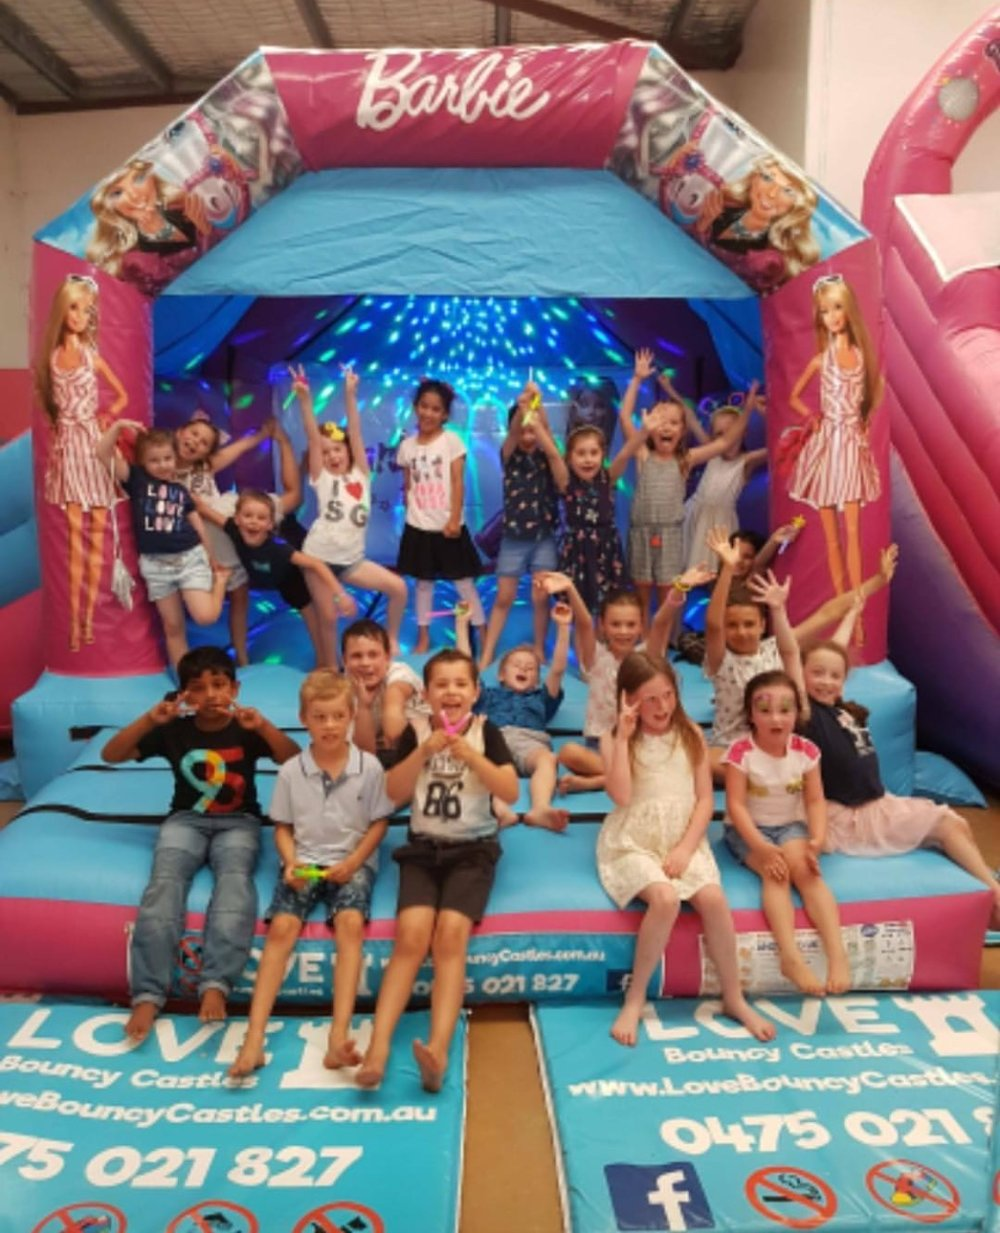 Bouncy Castle Hire In Perth